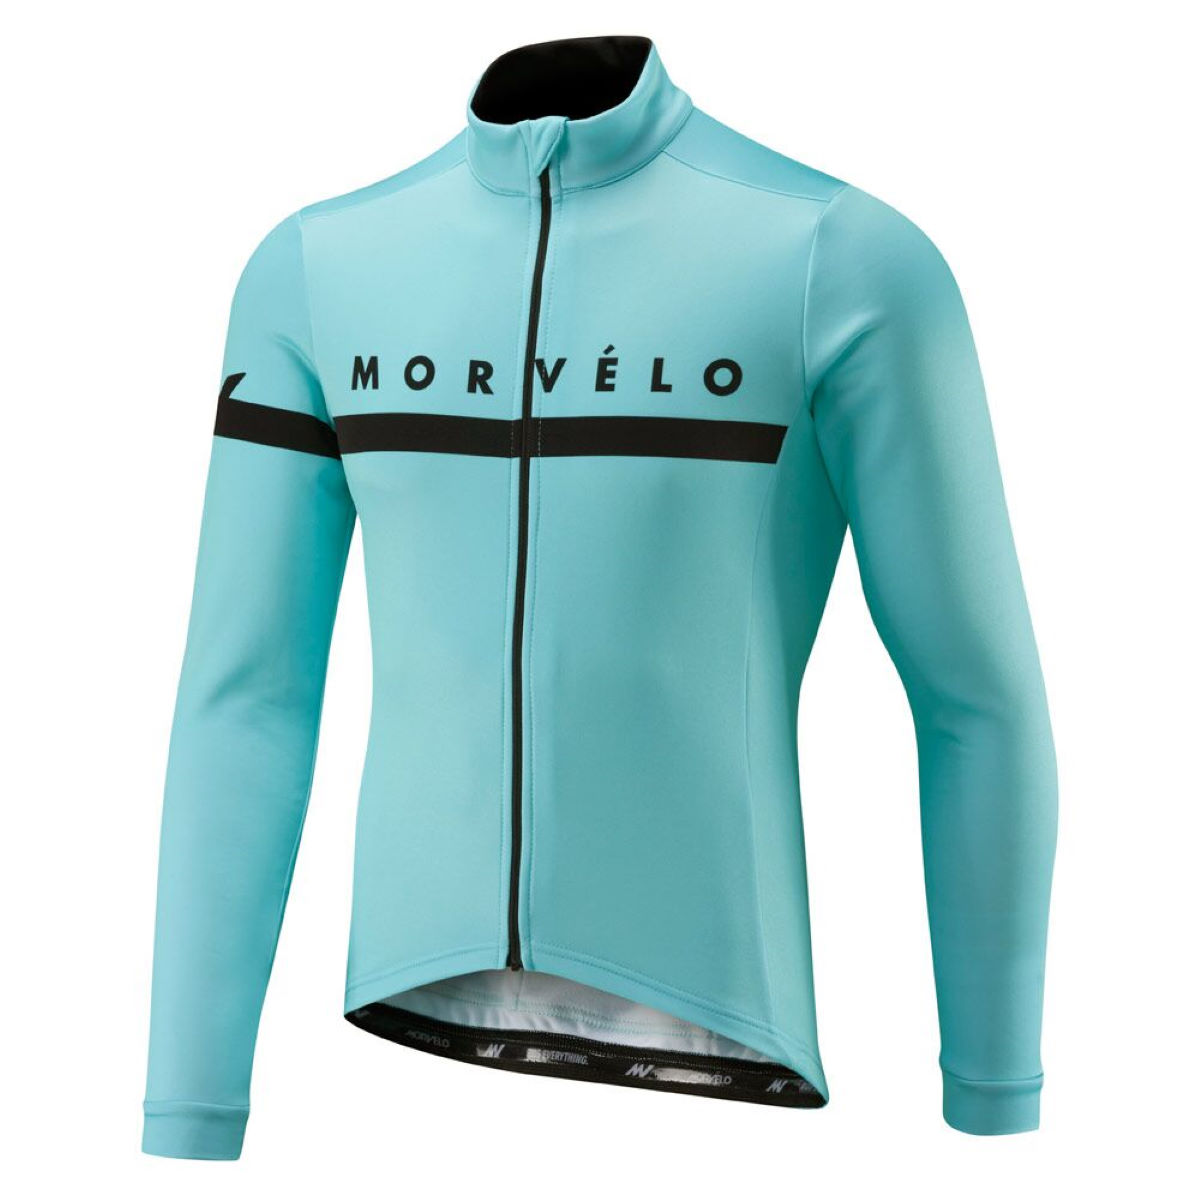 Maillot Morvelo Kuler Thermoactive (manches longues) - M Celeste